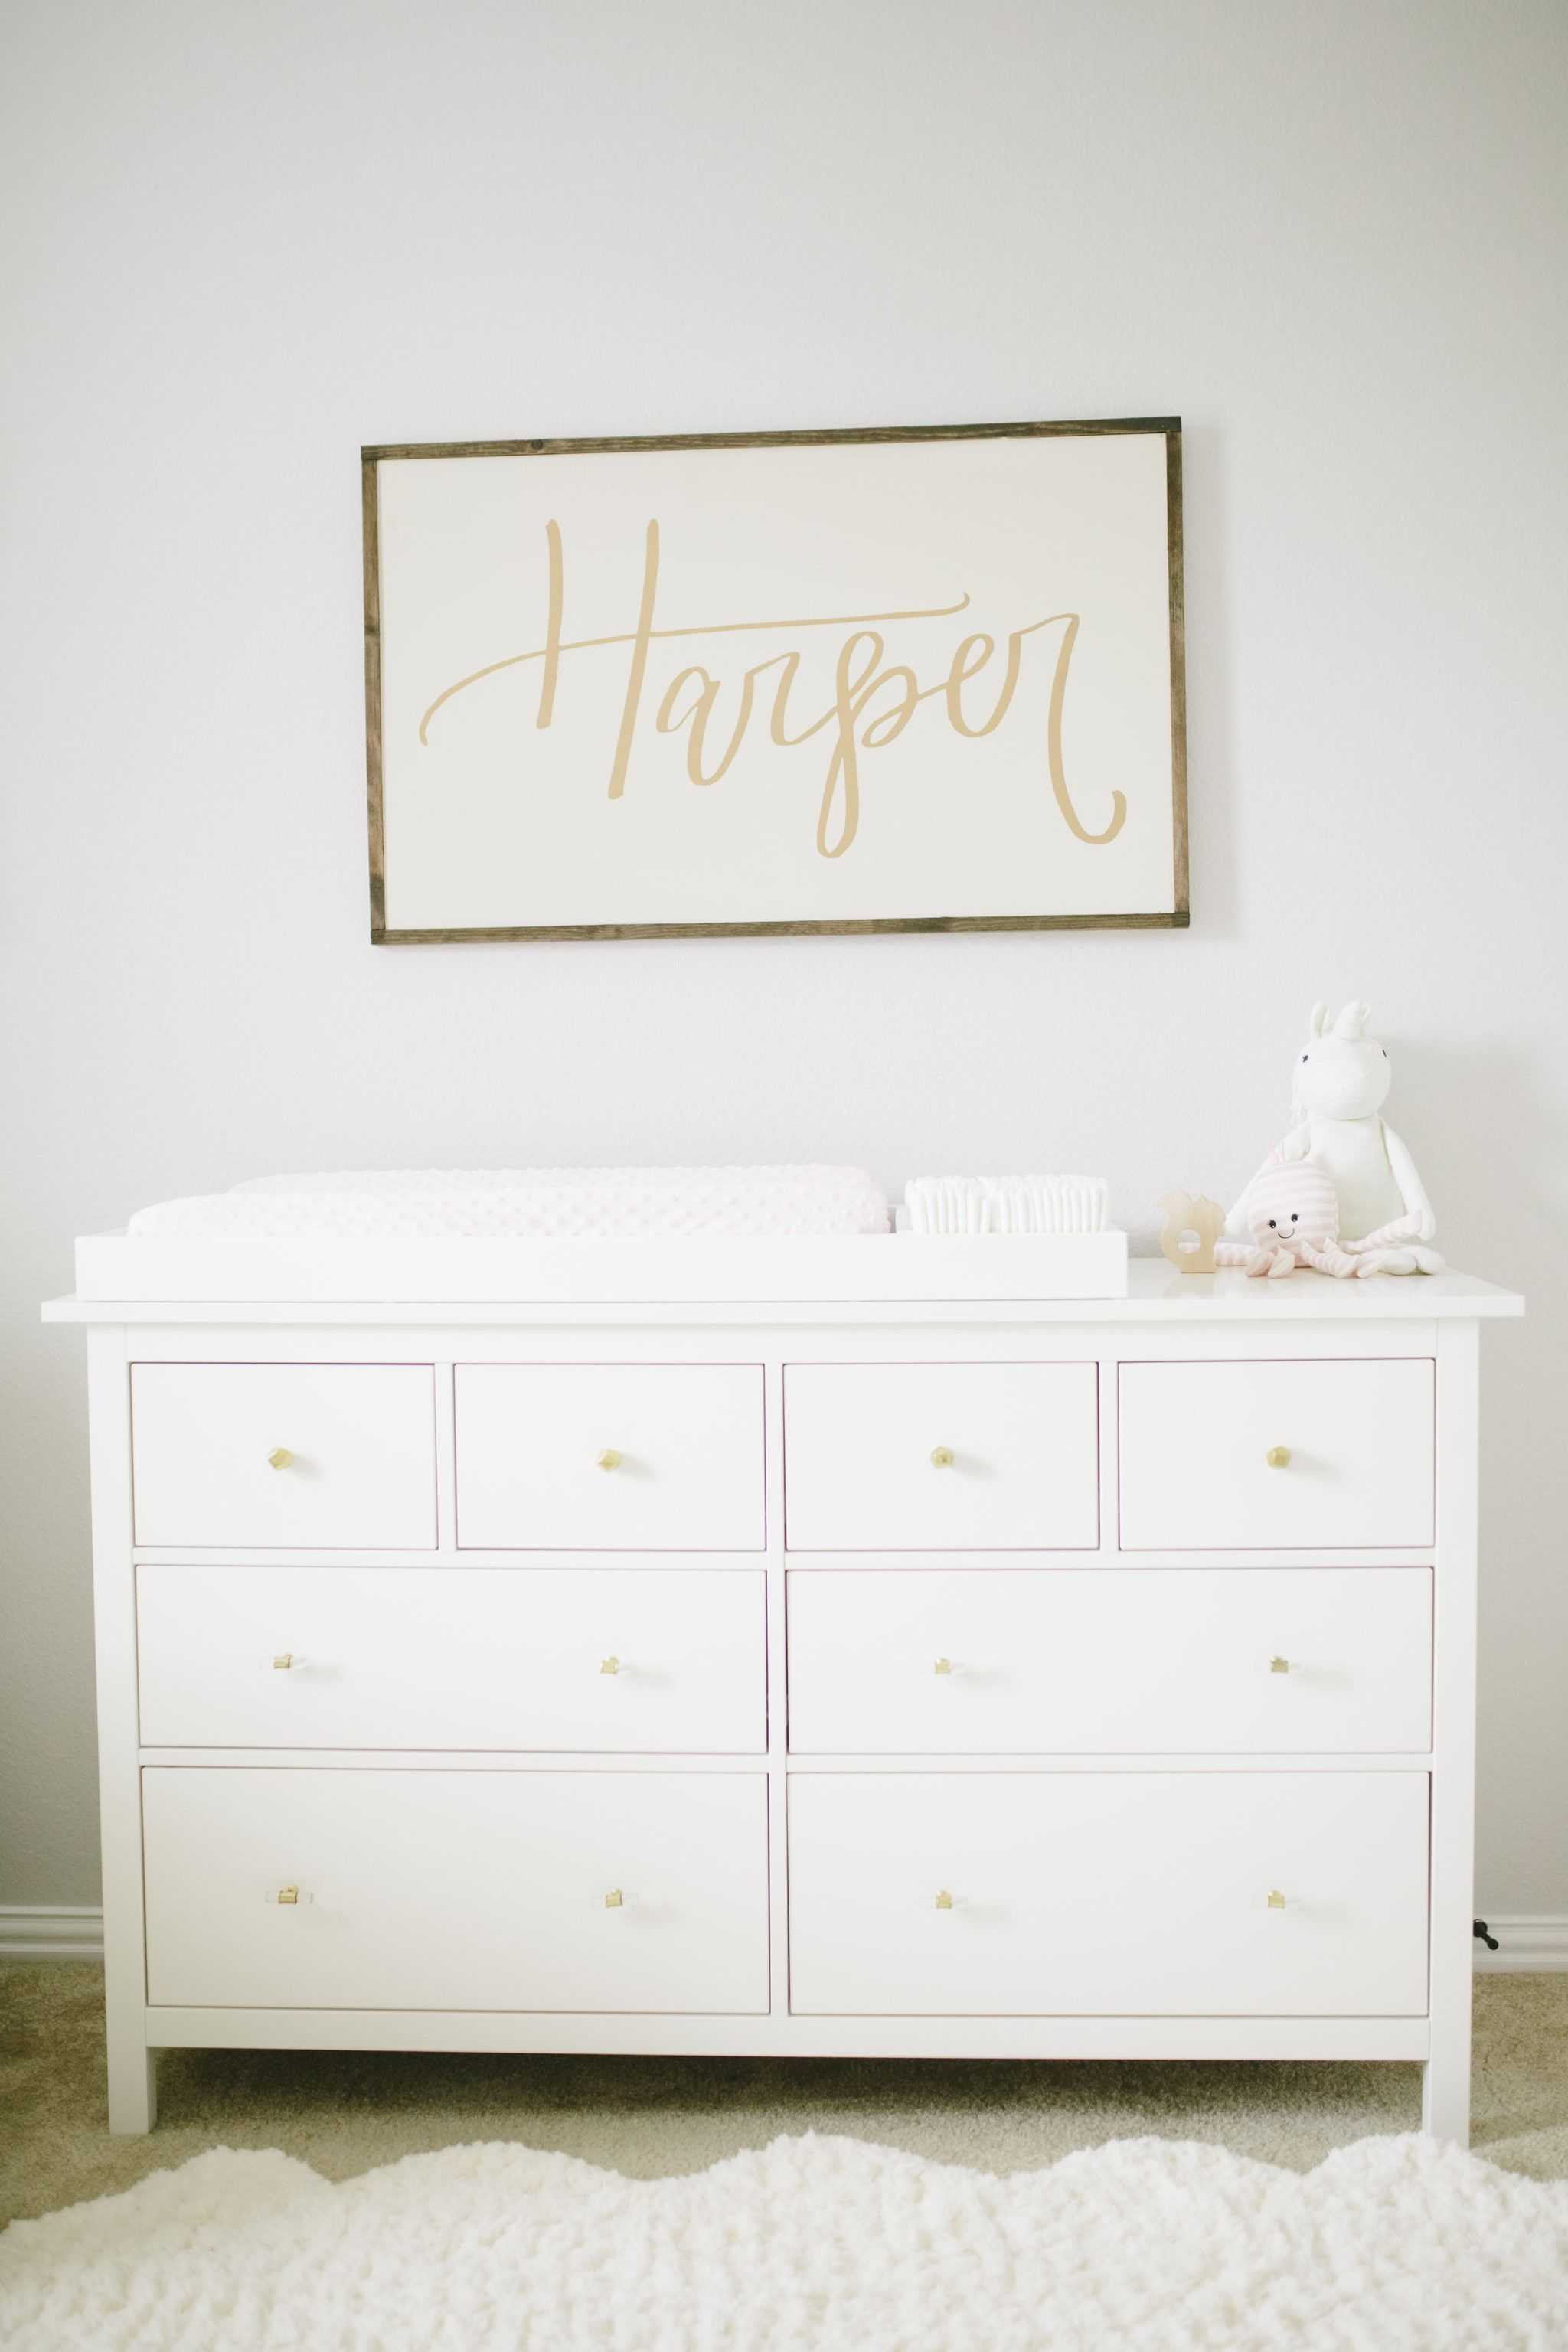 Project Nursery Painted Name Sign Over Dresser